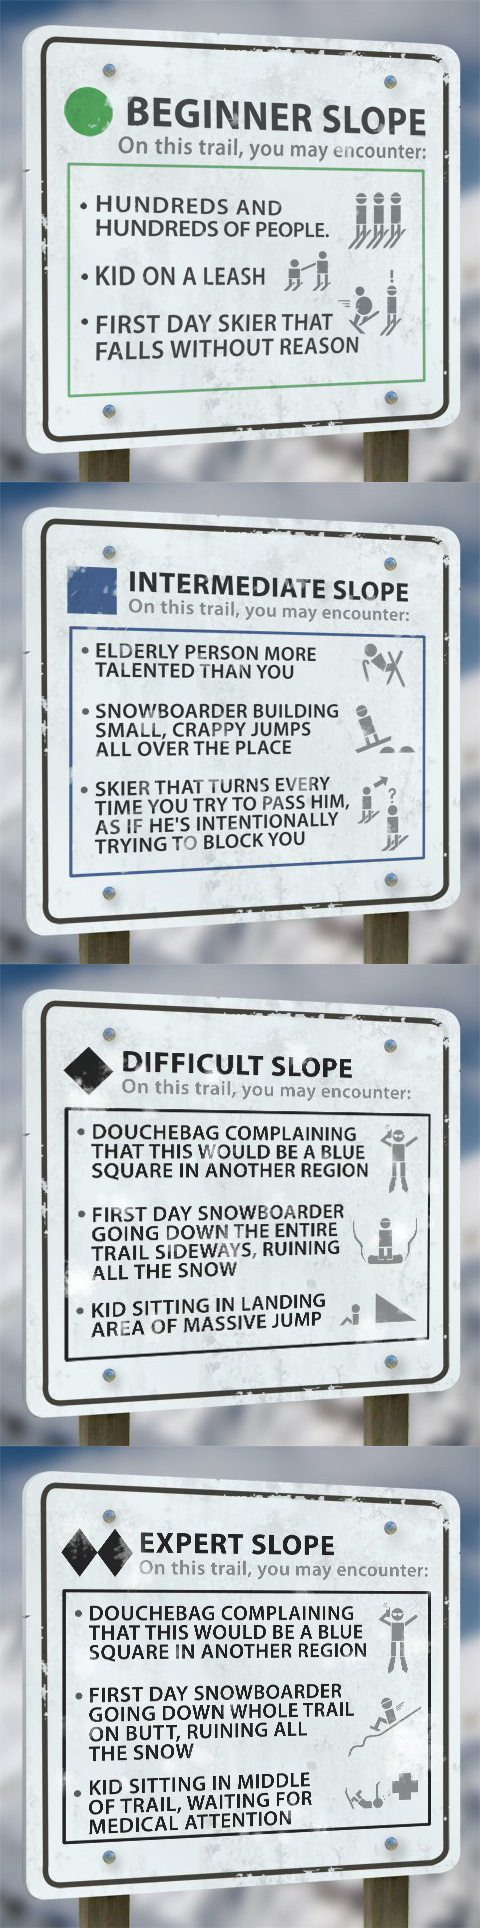 ski slopes funny